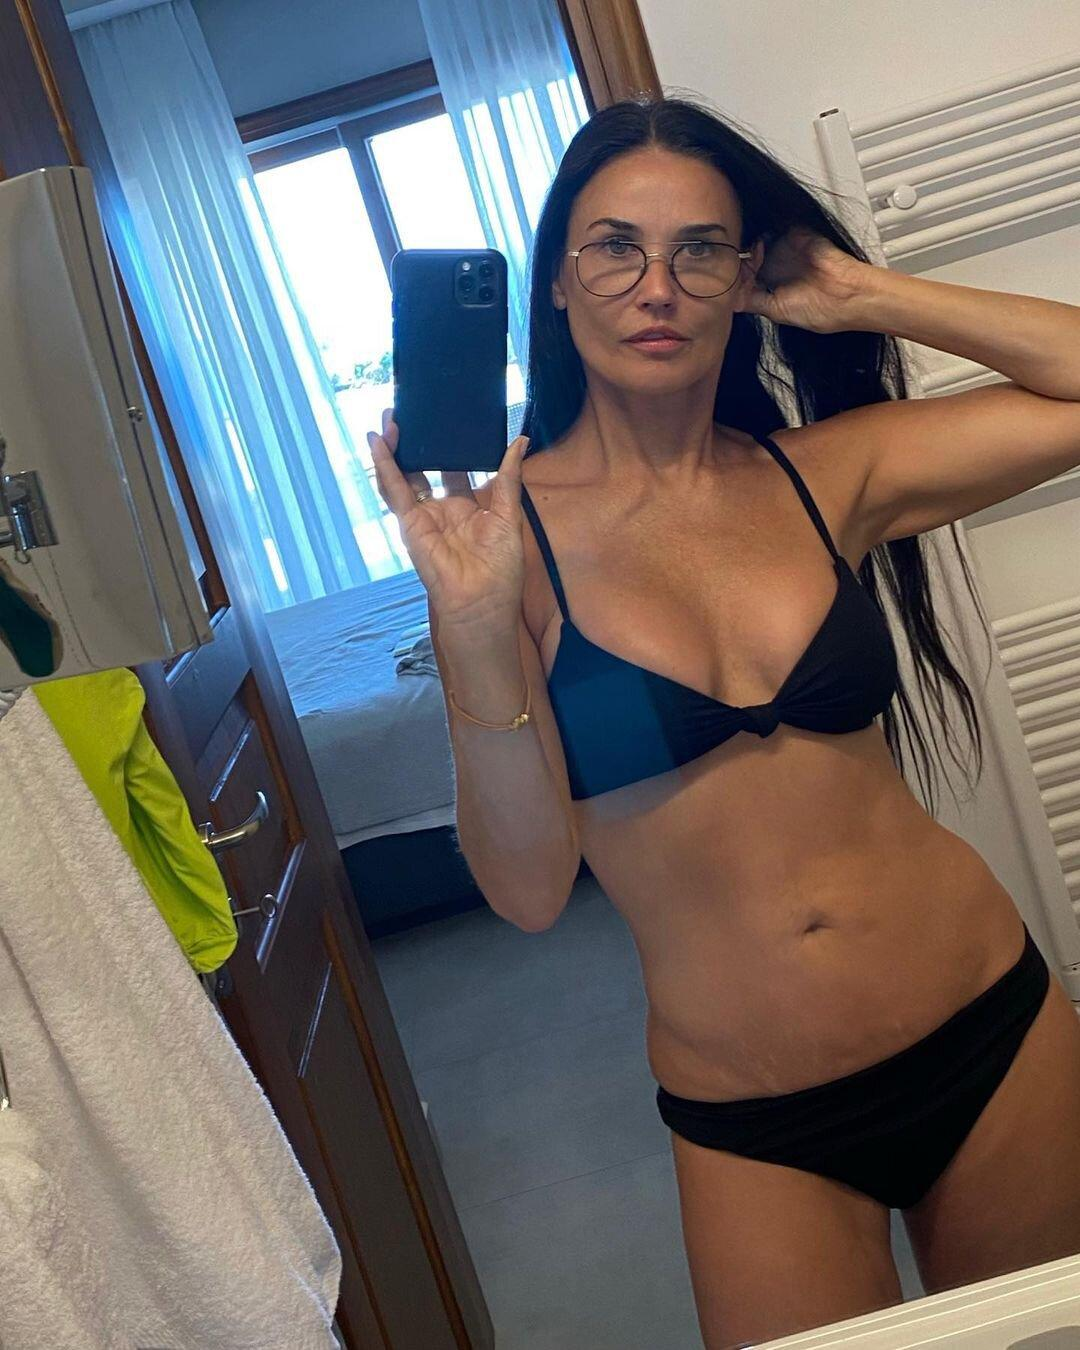 Demi Moore Shows Off Her Physique in Sexy Bikini Selfies: 'Another Day in Paradise'